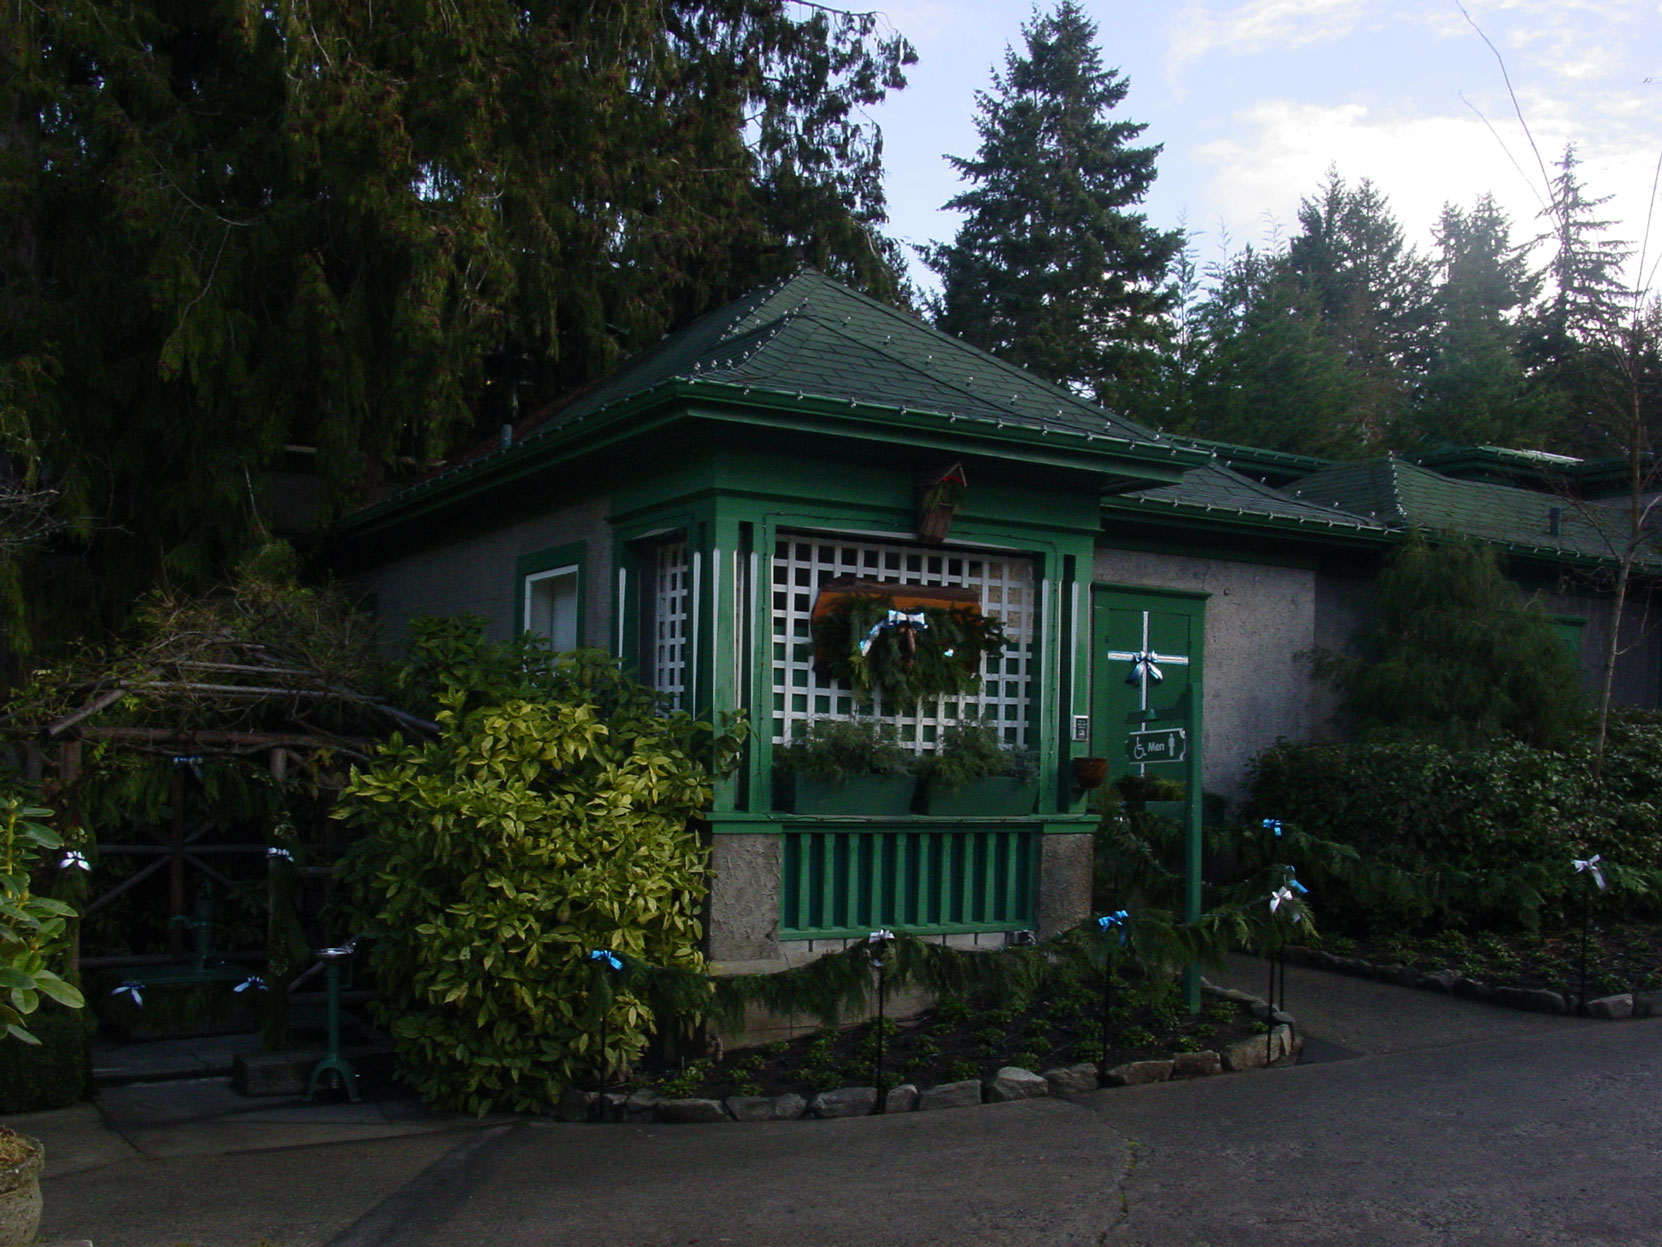 """The """"Chinaman's Cottage"""" designed by architect Samuel Maclure in 1917 as it appeared in November 2003. It is now a Men's washroom at Butchart Gardens. (Photo by Author)."""